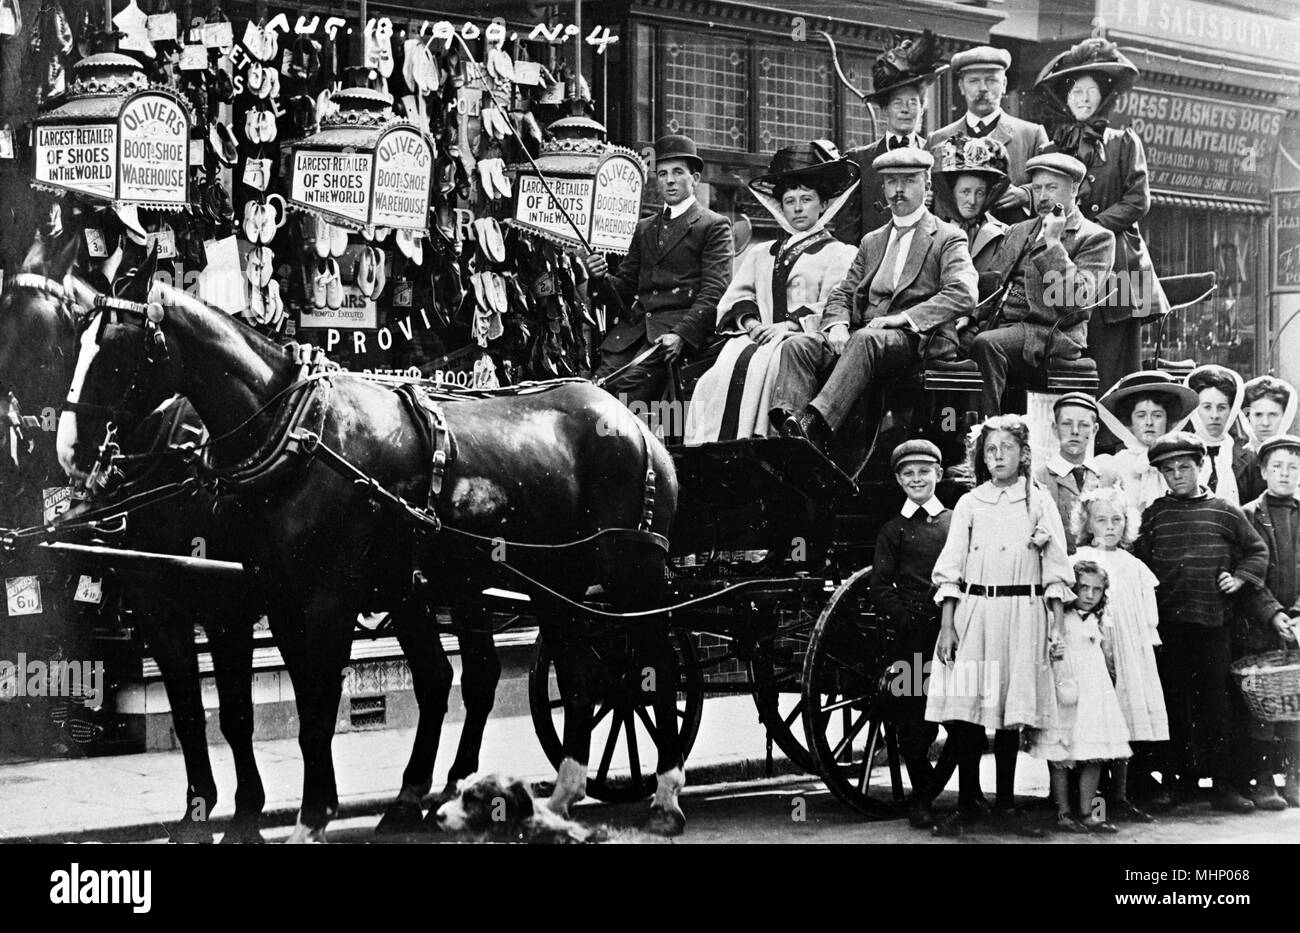 People on a horse-drawn carriage outside Oliver's Boot and Shoe Warehouse, Ilfracombe, Devon, taken on 18 August 1909.      Date: 1909 - Stock Image